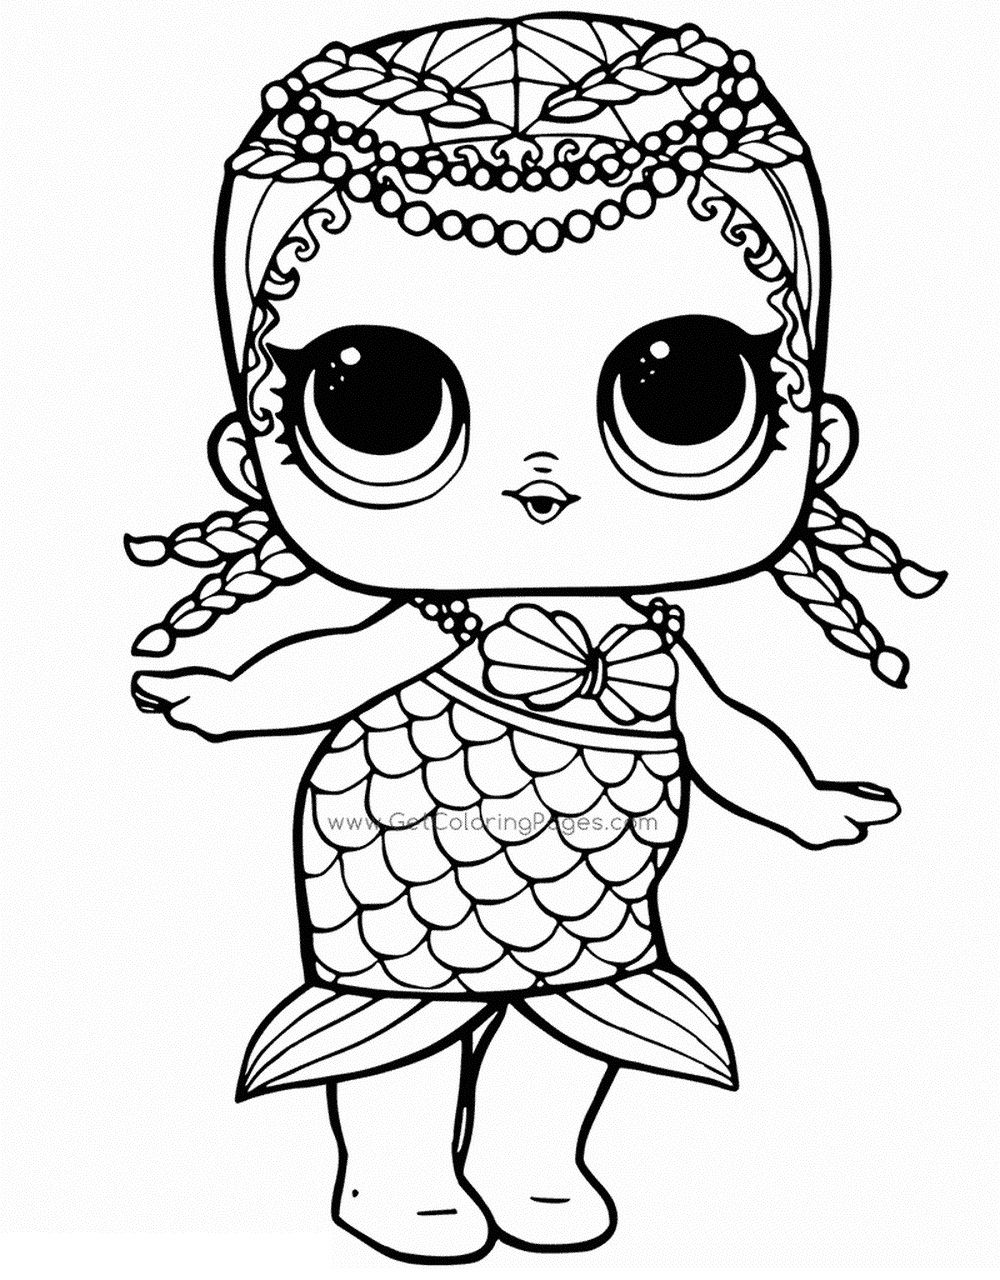 Lol Surprise Dolls Coloring Pages Print Them For Free All The Series Mermaid Coloring Pages Unicorn Coloring Pages Mermaid Coloring